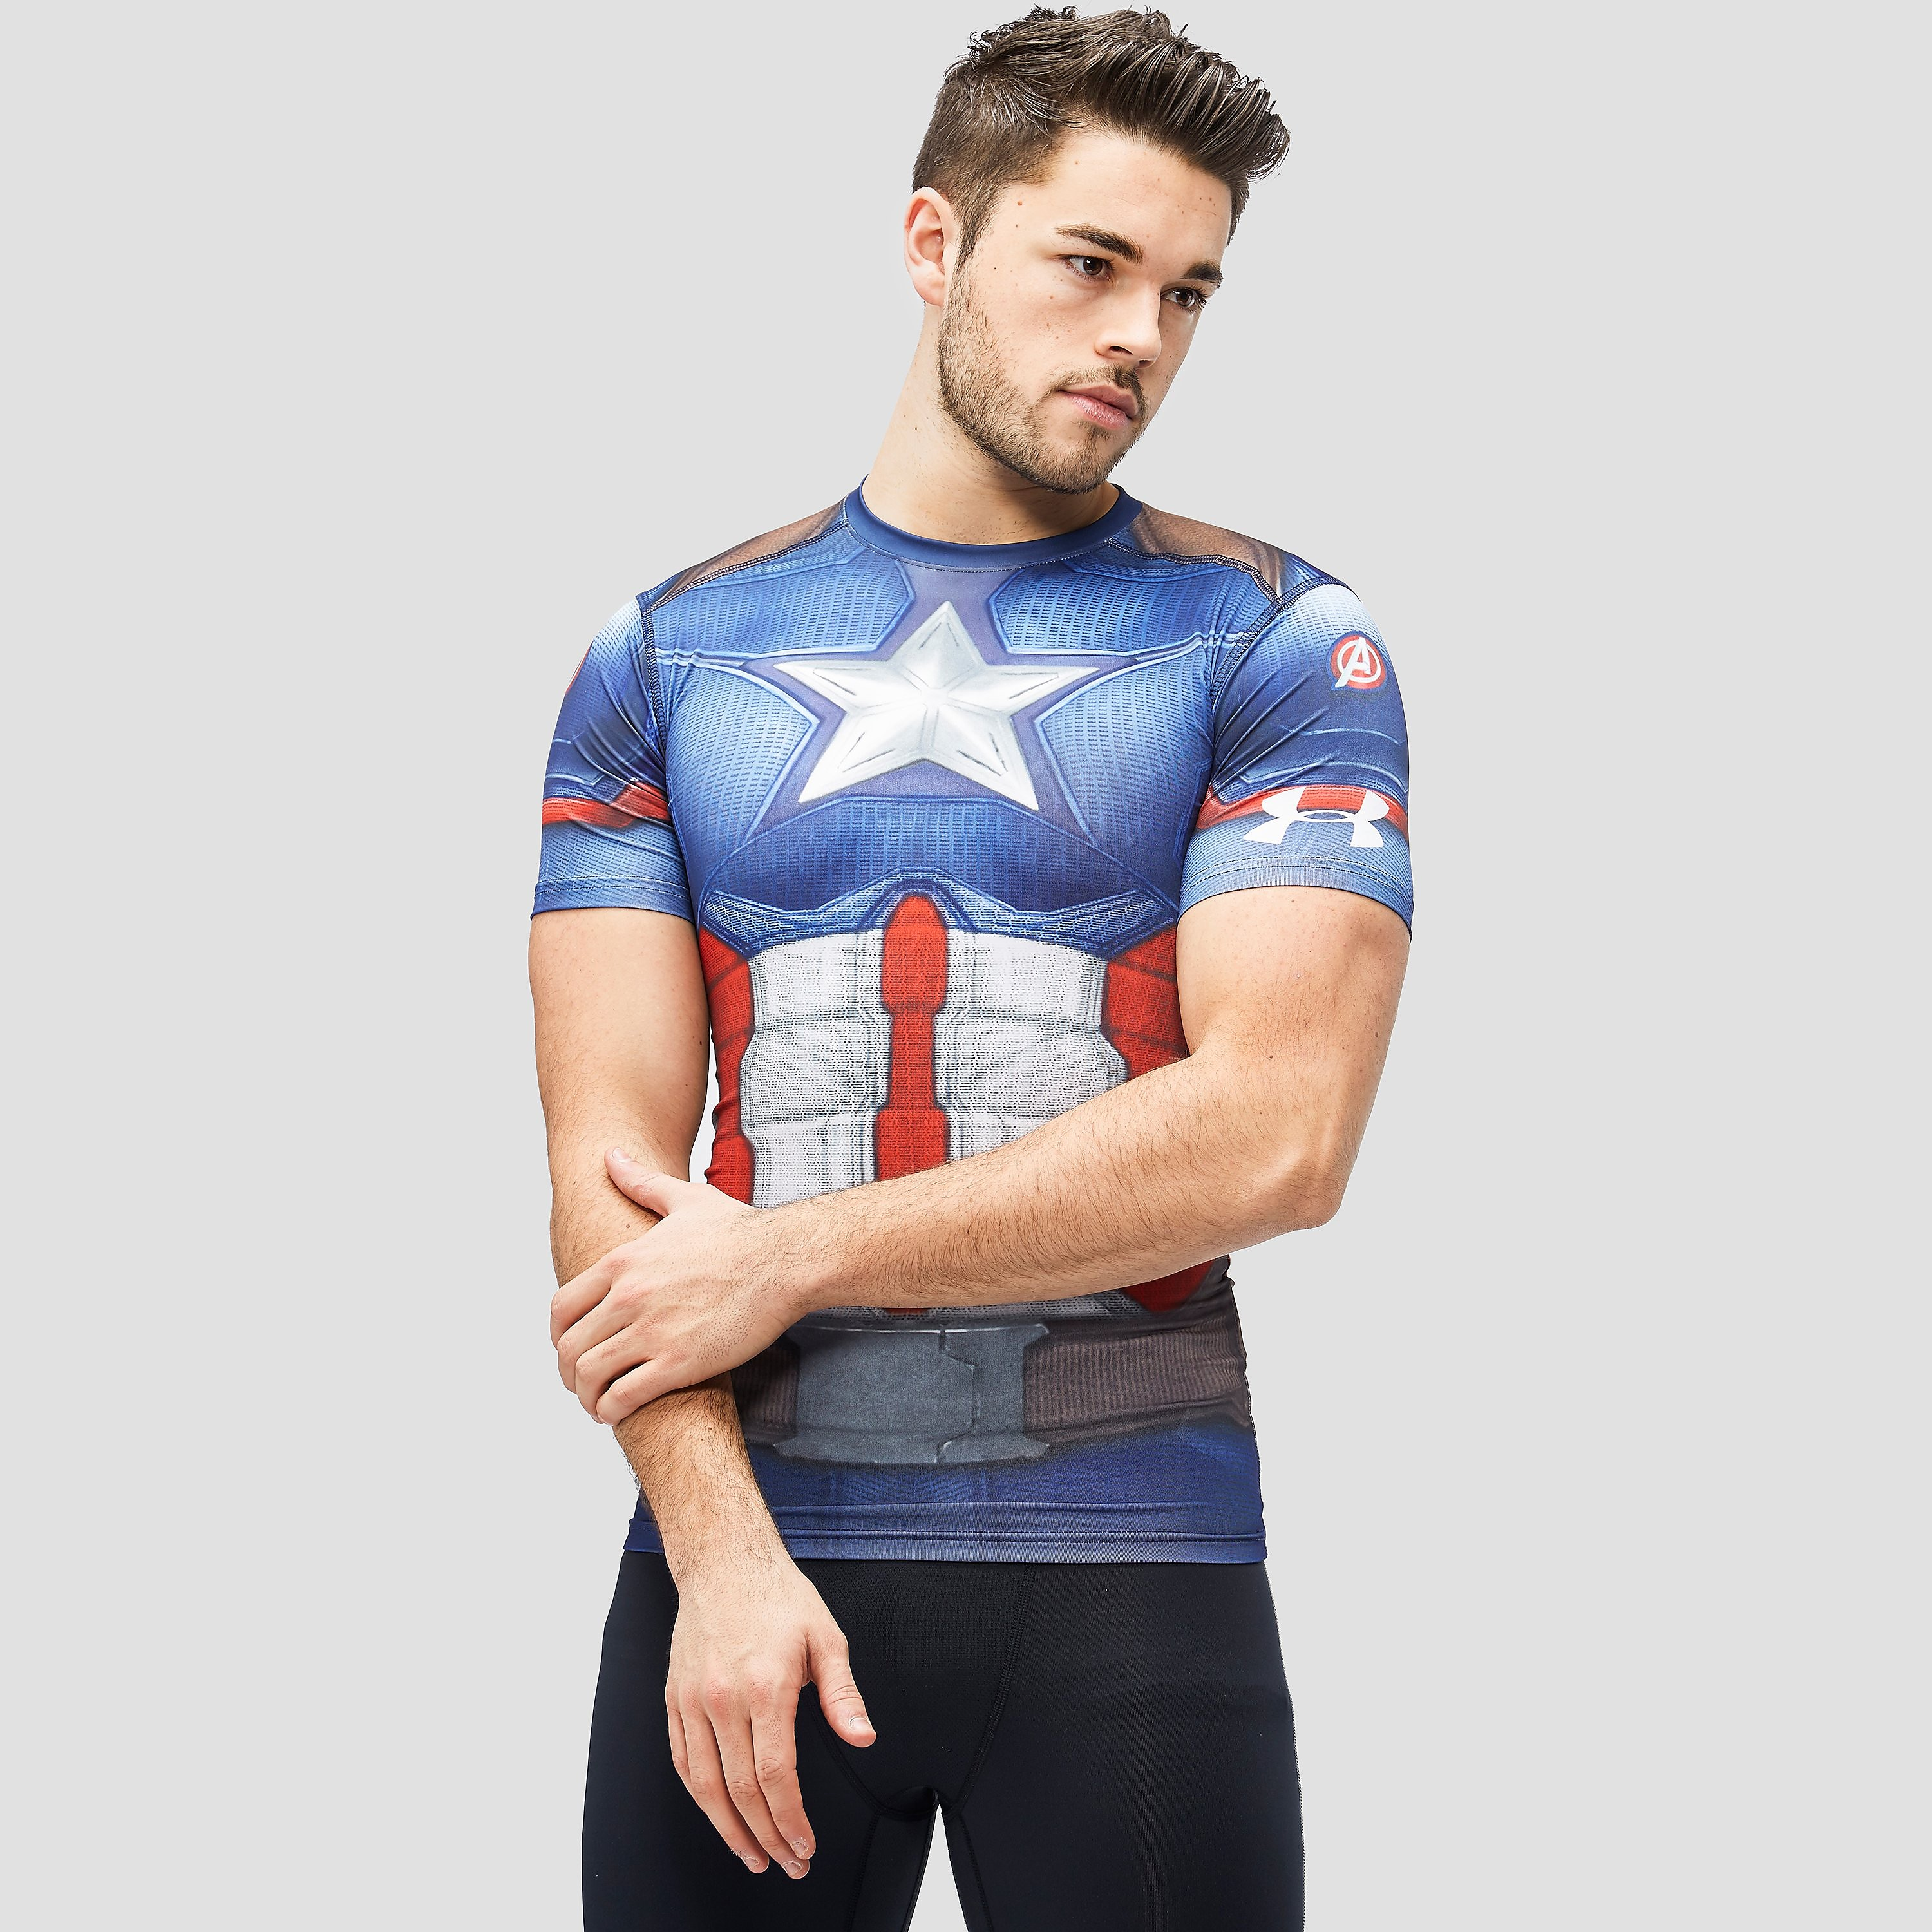 Under Armour Alter Ego Captain America Compression Short Sleeve Men's T-Shirt